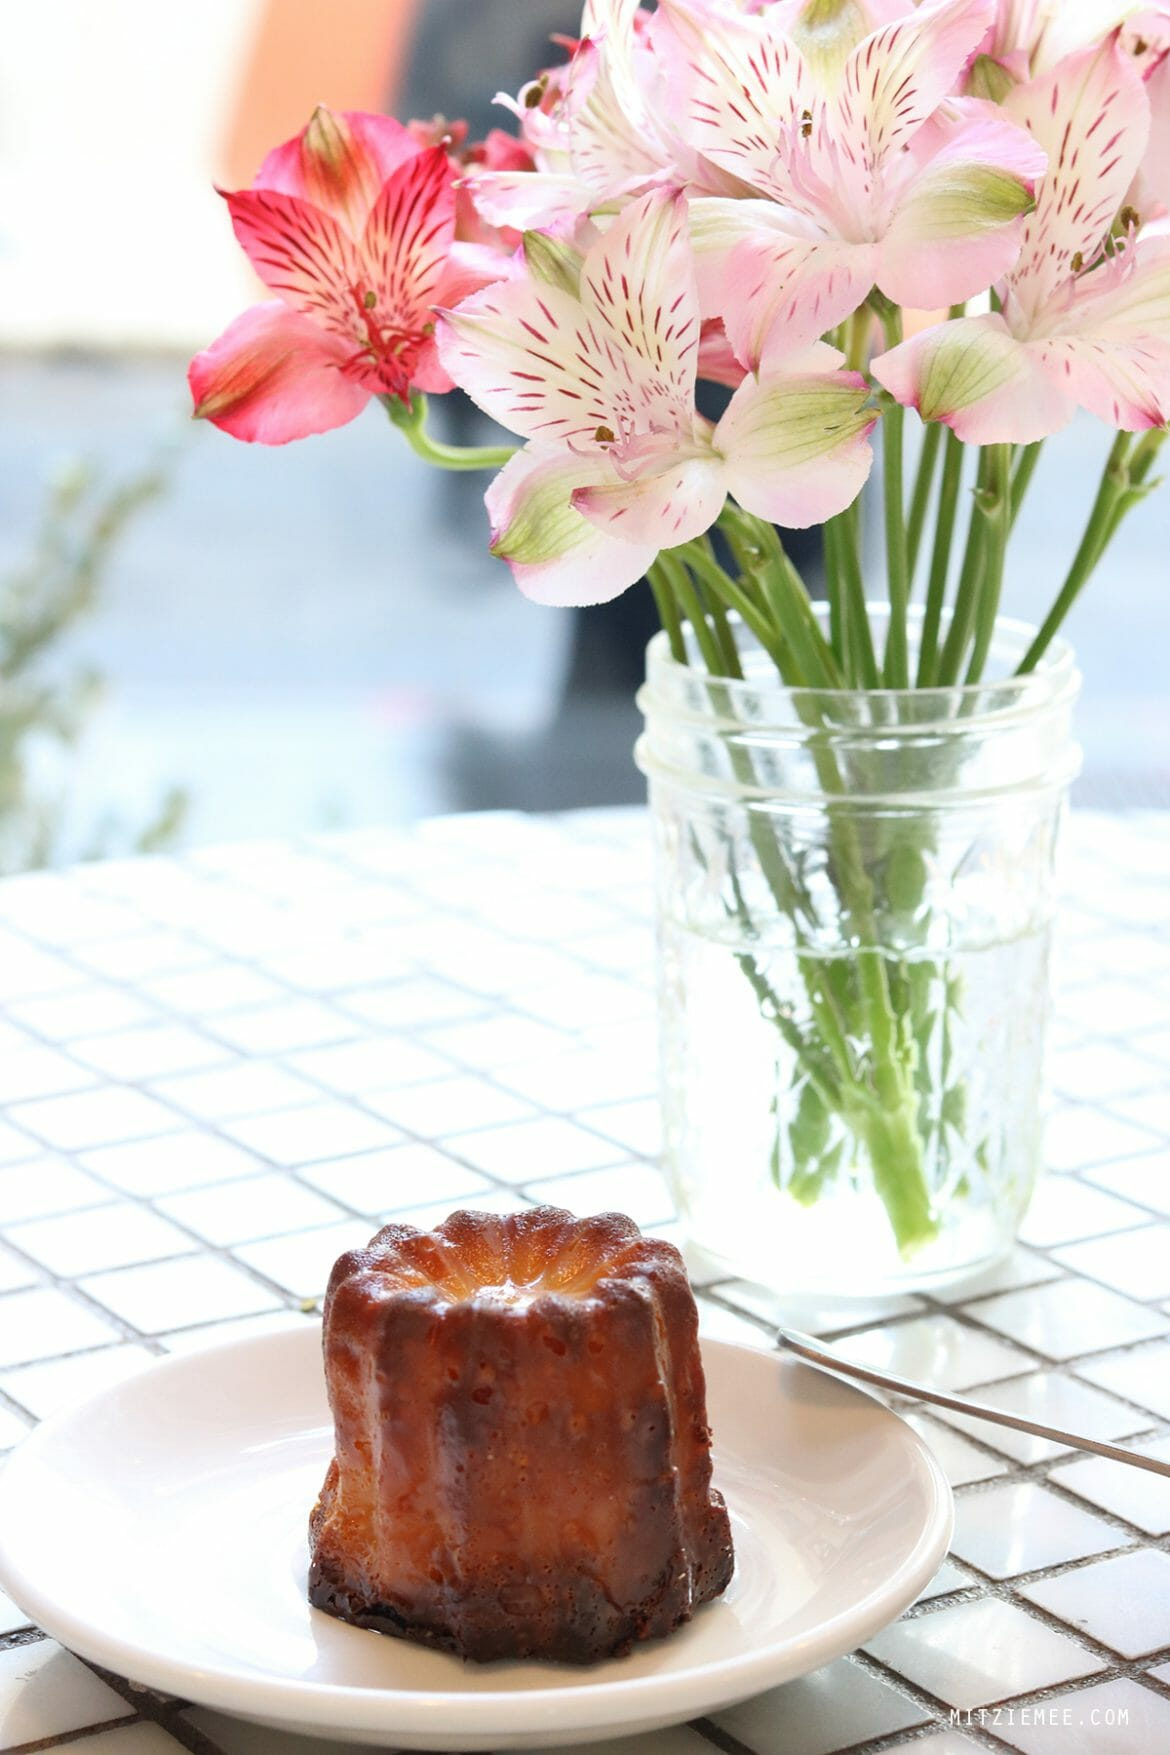 Canelé at Woops, New York